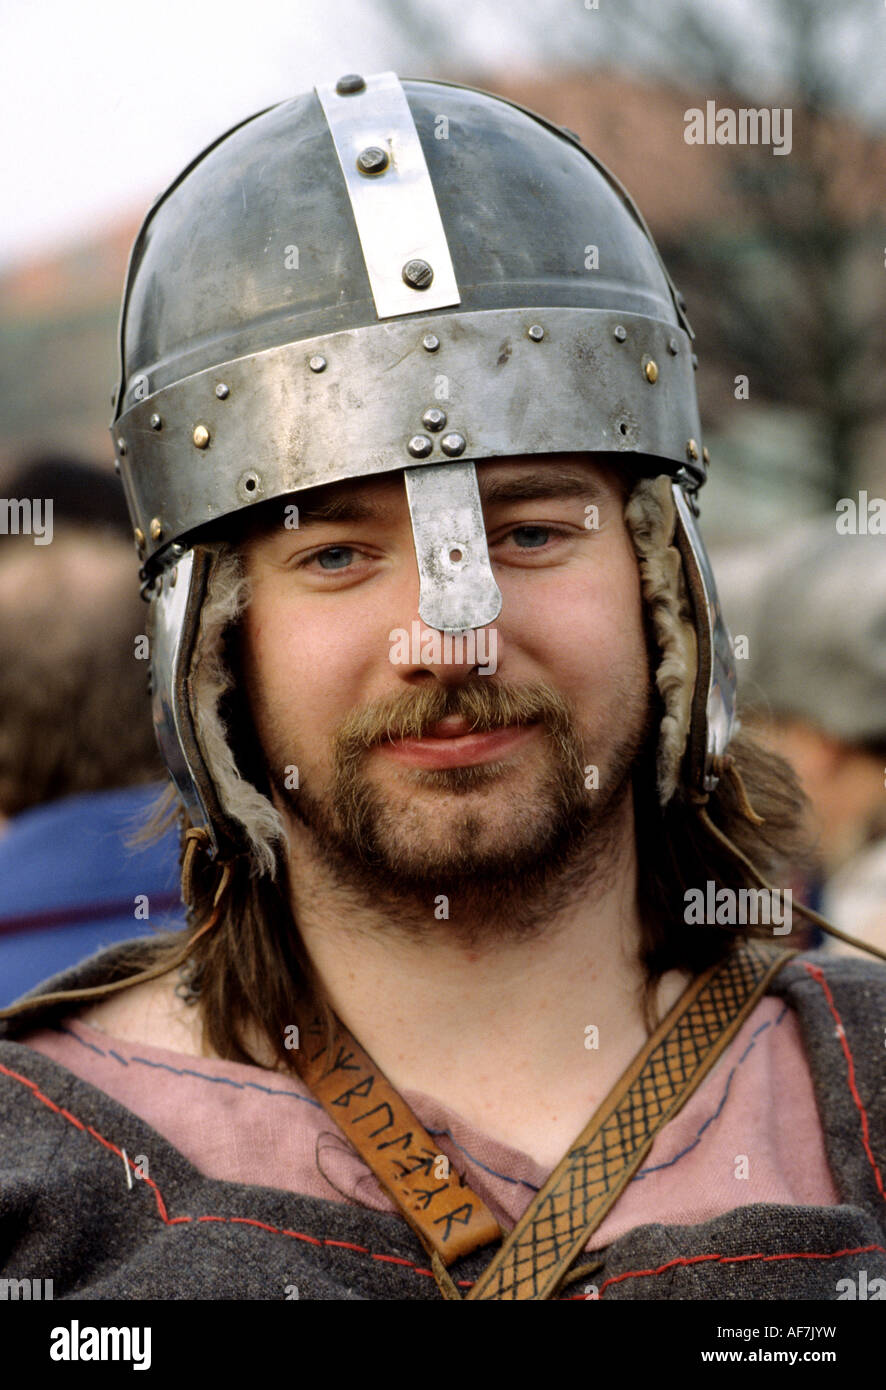 A re-enactment of a Viking and Anglo-Saxon battle at York, England, UK. - Stock Image